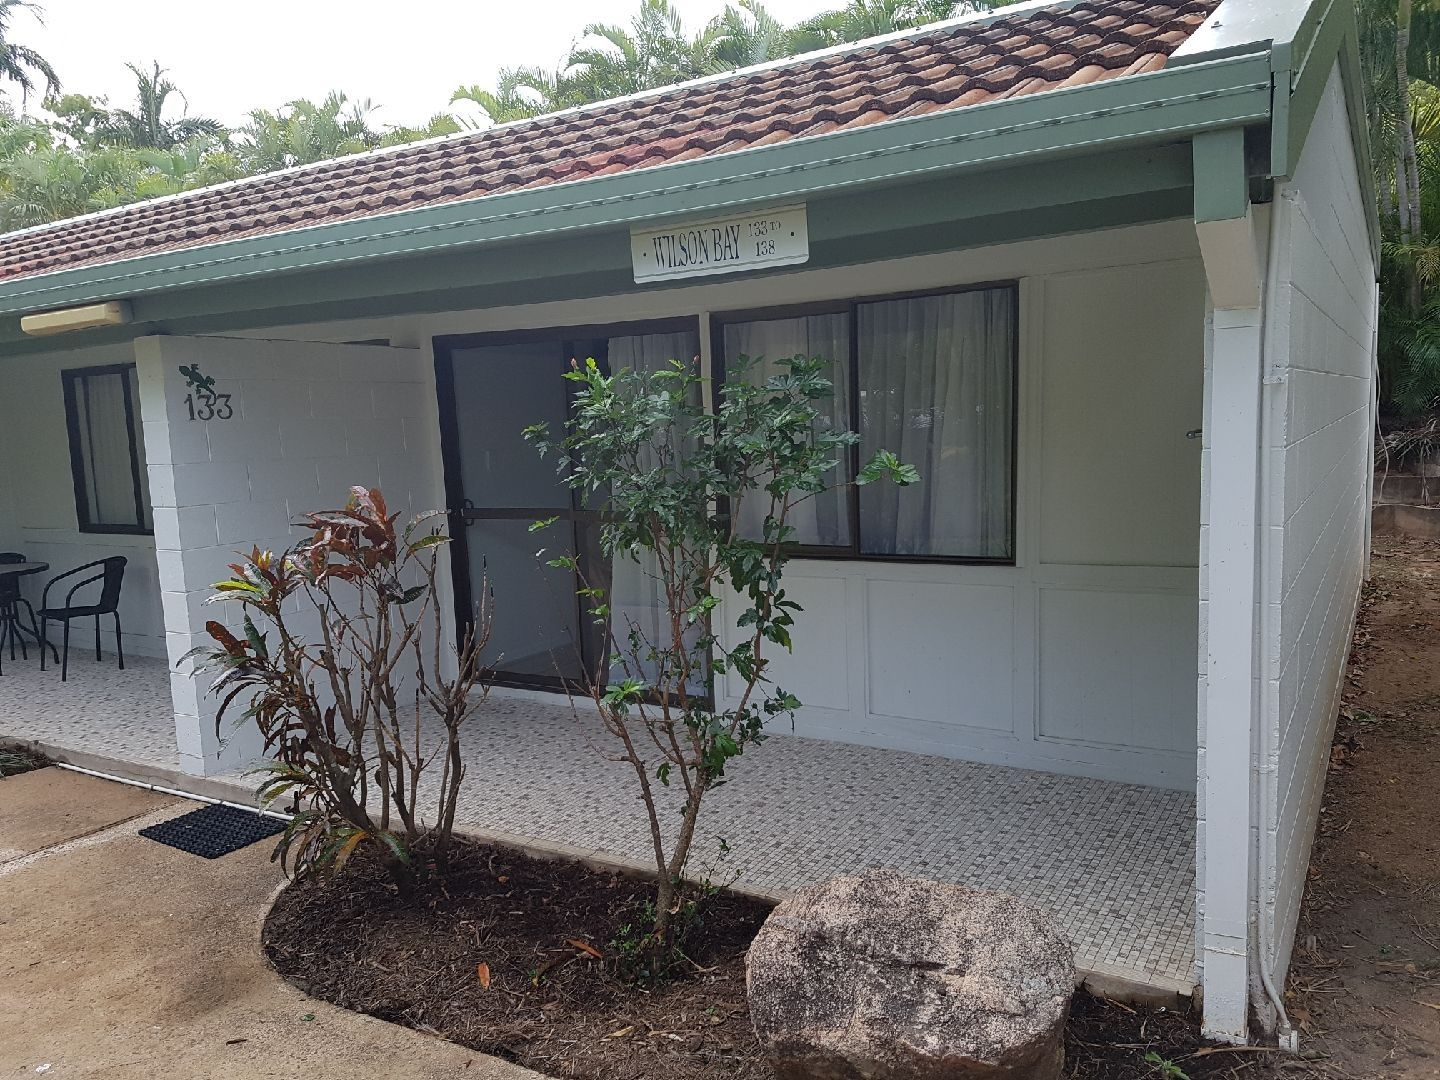 133/61-79 Mandalay Avenue, Nelly Bay QLD 4819, Image 0